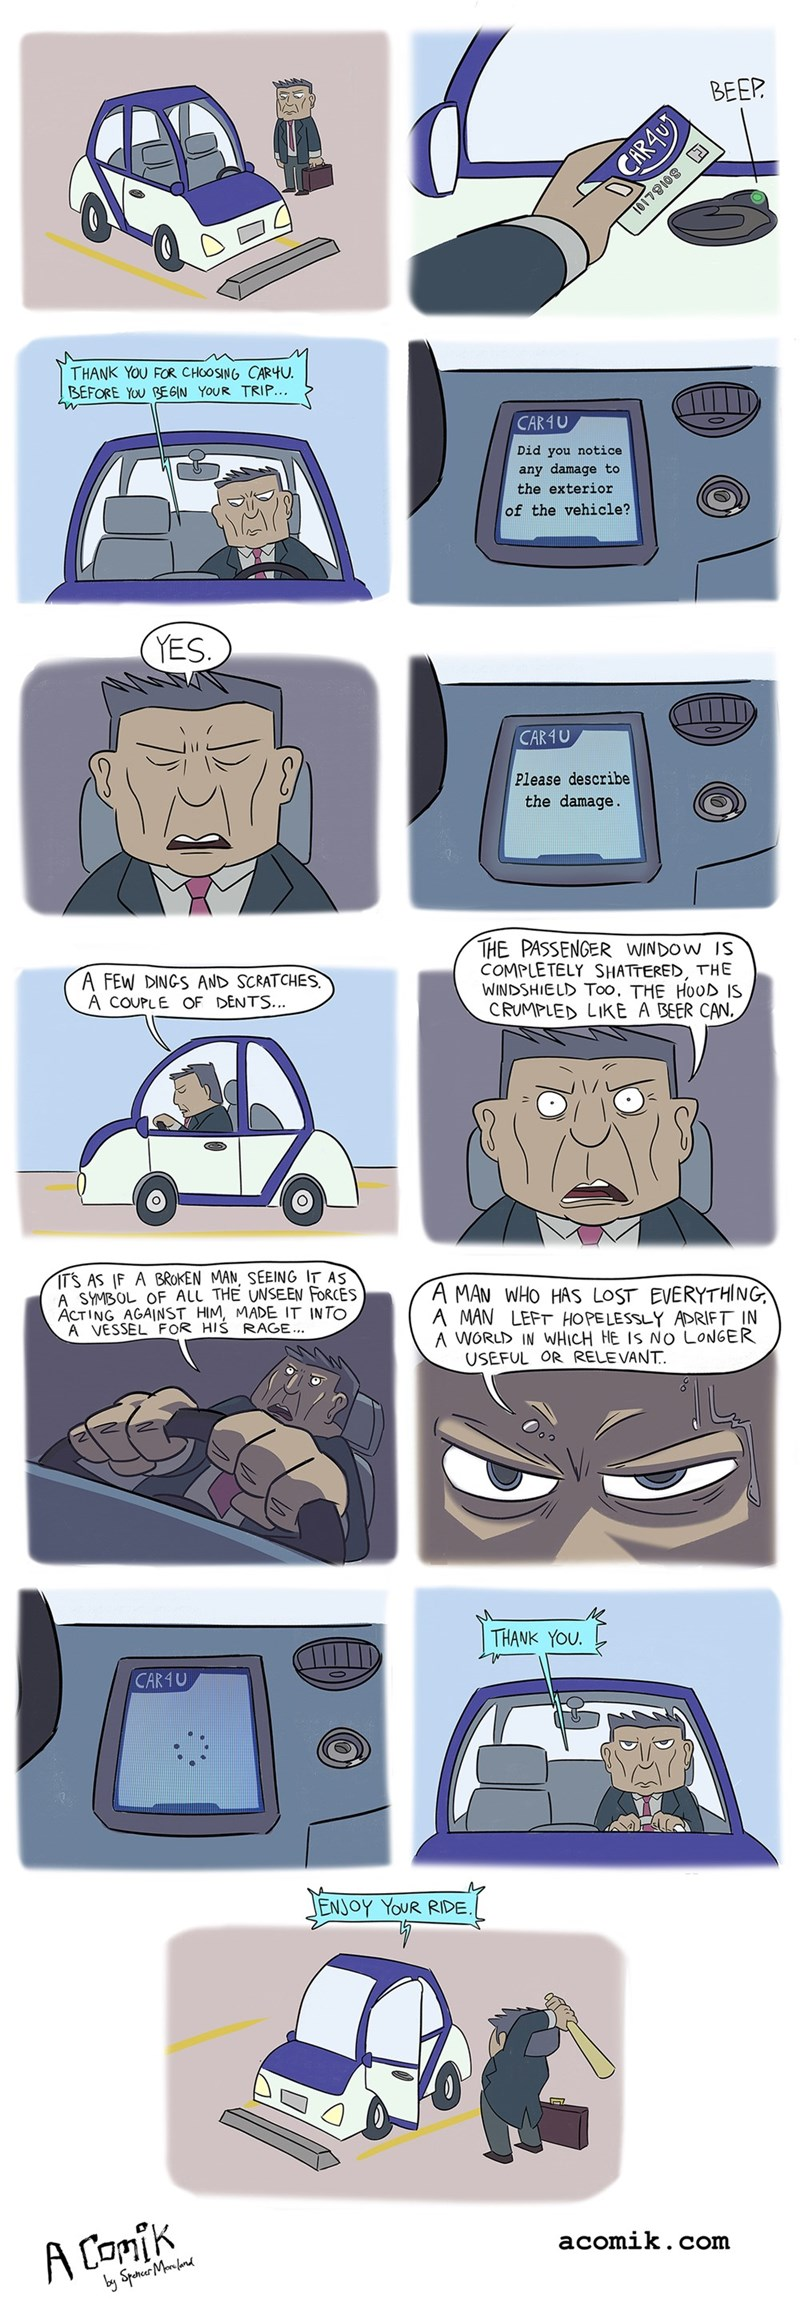 rage car technology angry web comics